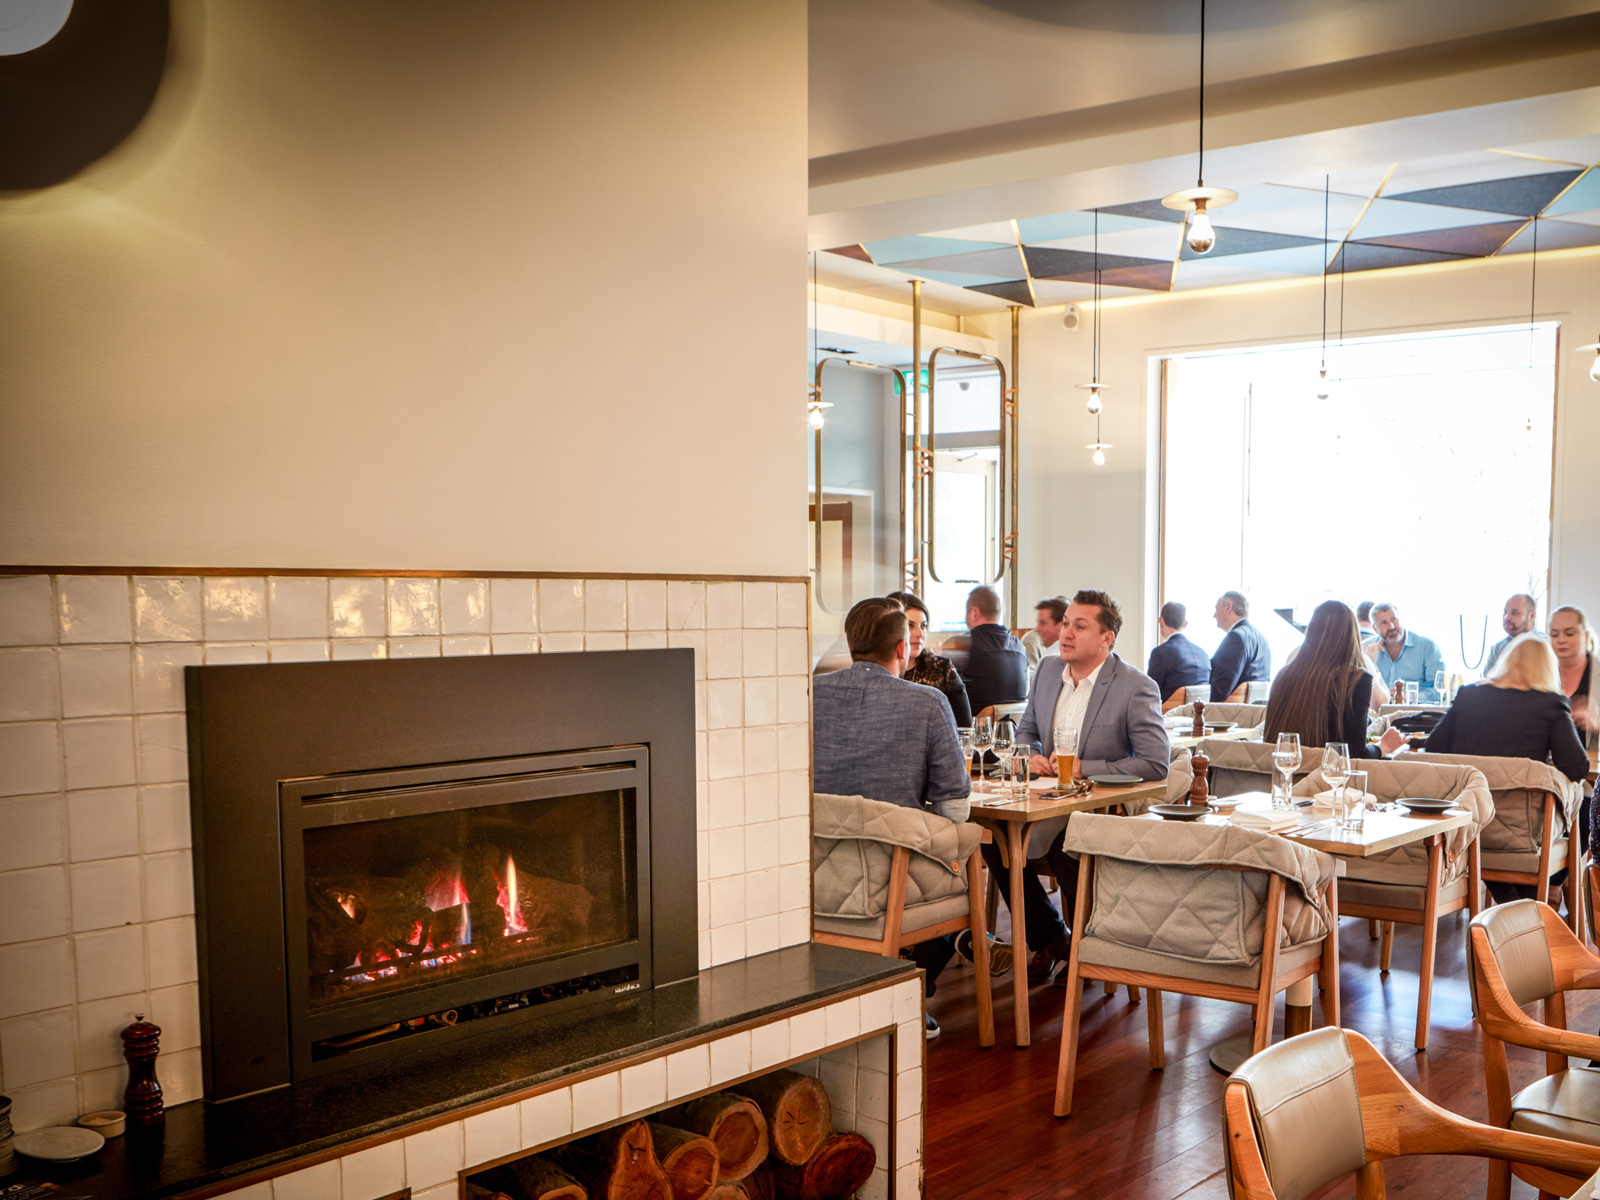 cosy pubs in sydney made for fireside feasting qantas travel insider